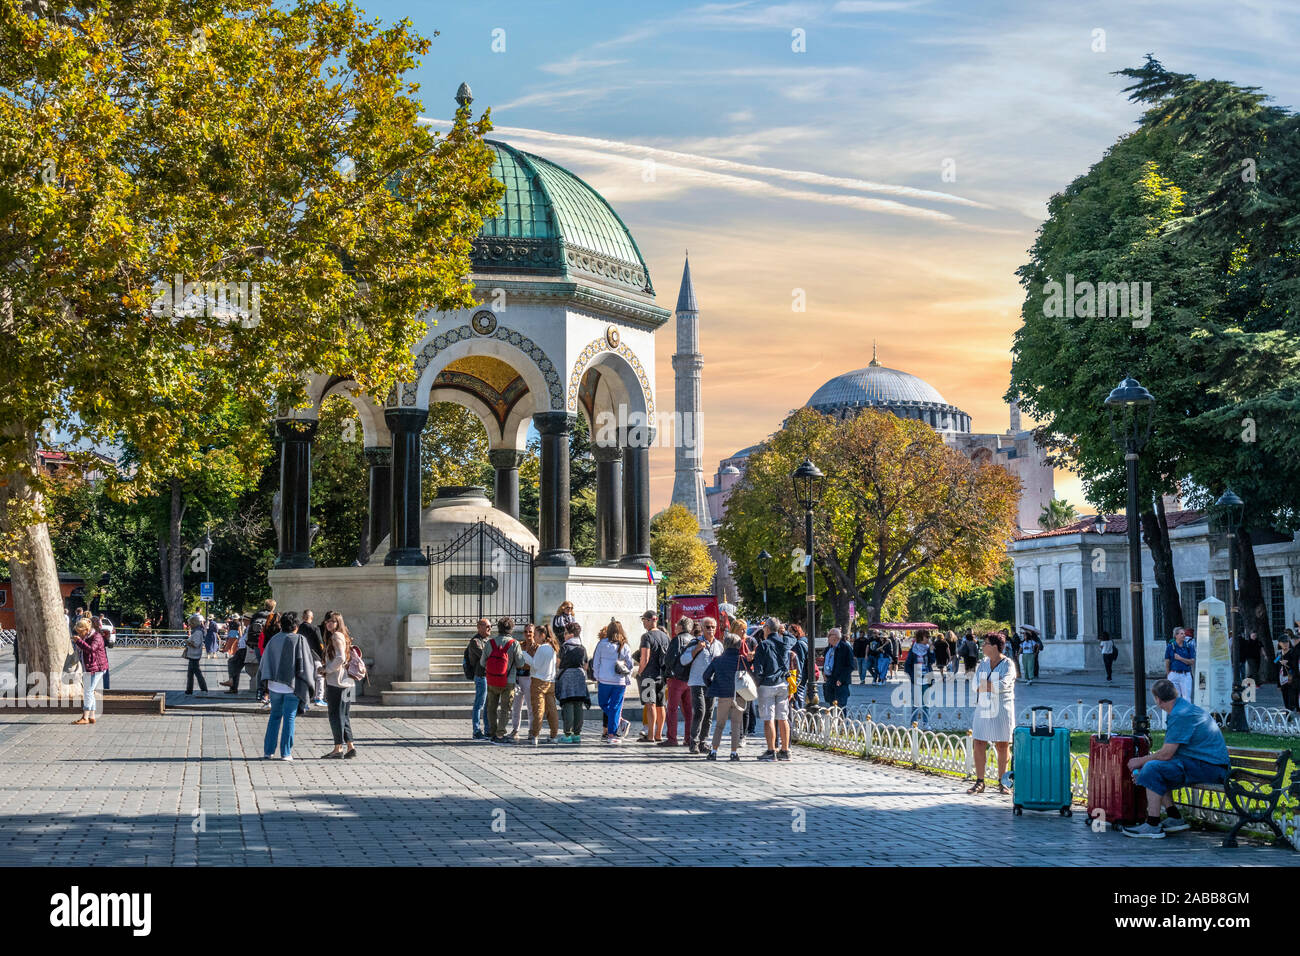 Tourists pass by the German Fountain, a gazebo styled fountain in Sultanahmet Square with the Hagia Sophia in the distance. Stock Photo